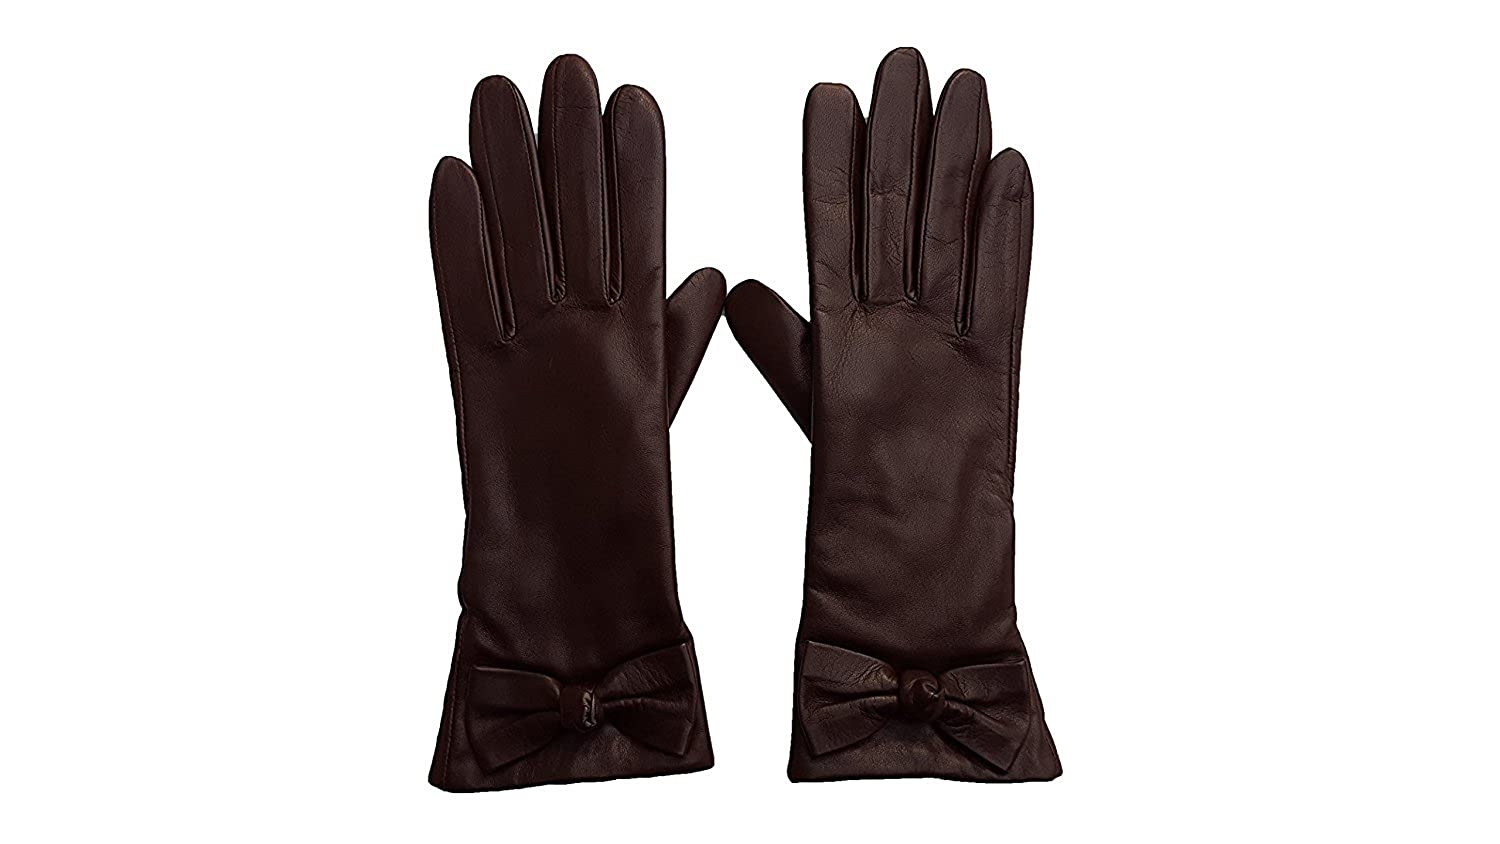 Kate Spade New York Women's Bon Bon Bow Leather Gloves Mahogany (200)) 00_COBXZESF_02